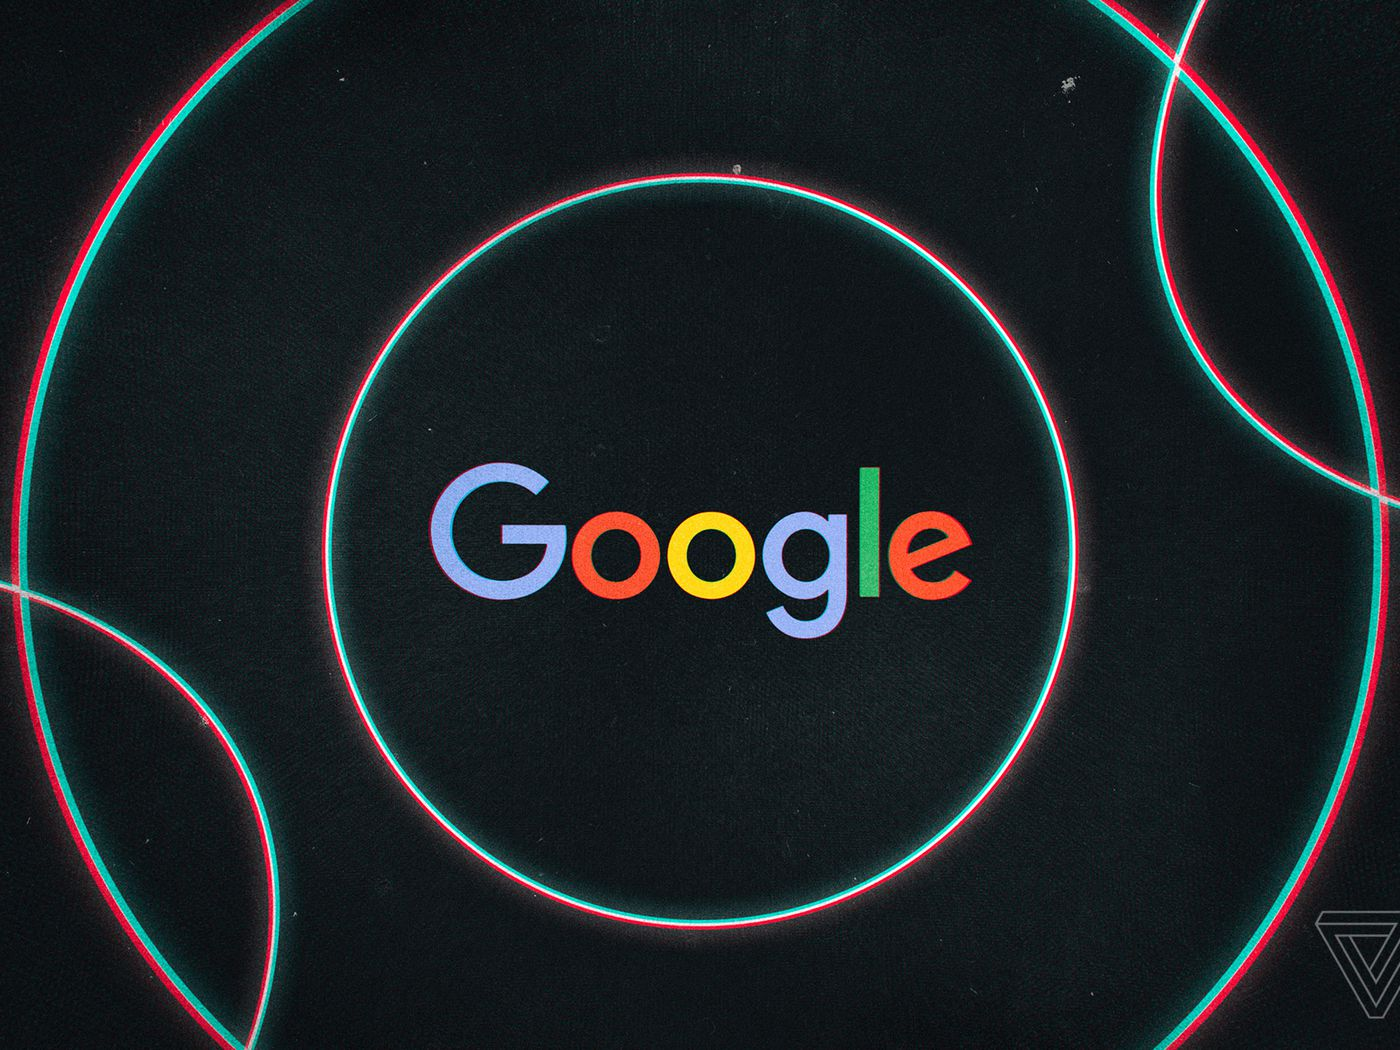 Google fixes search issue that prevented new content from appearing